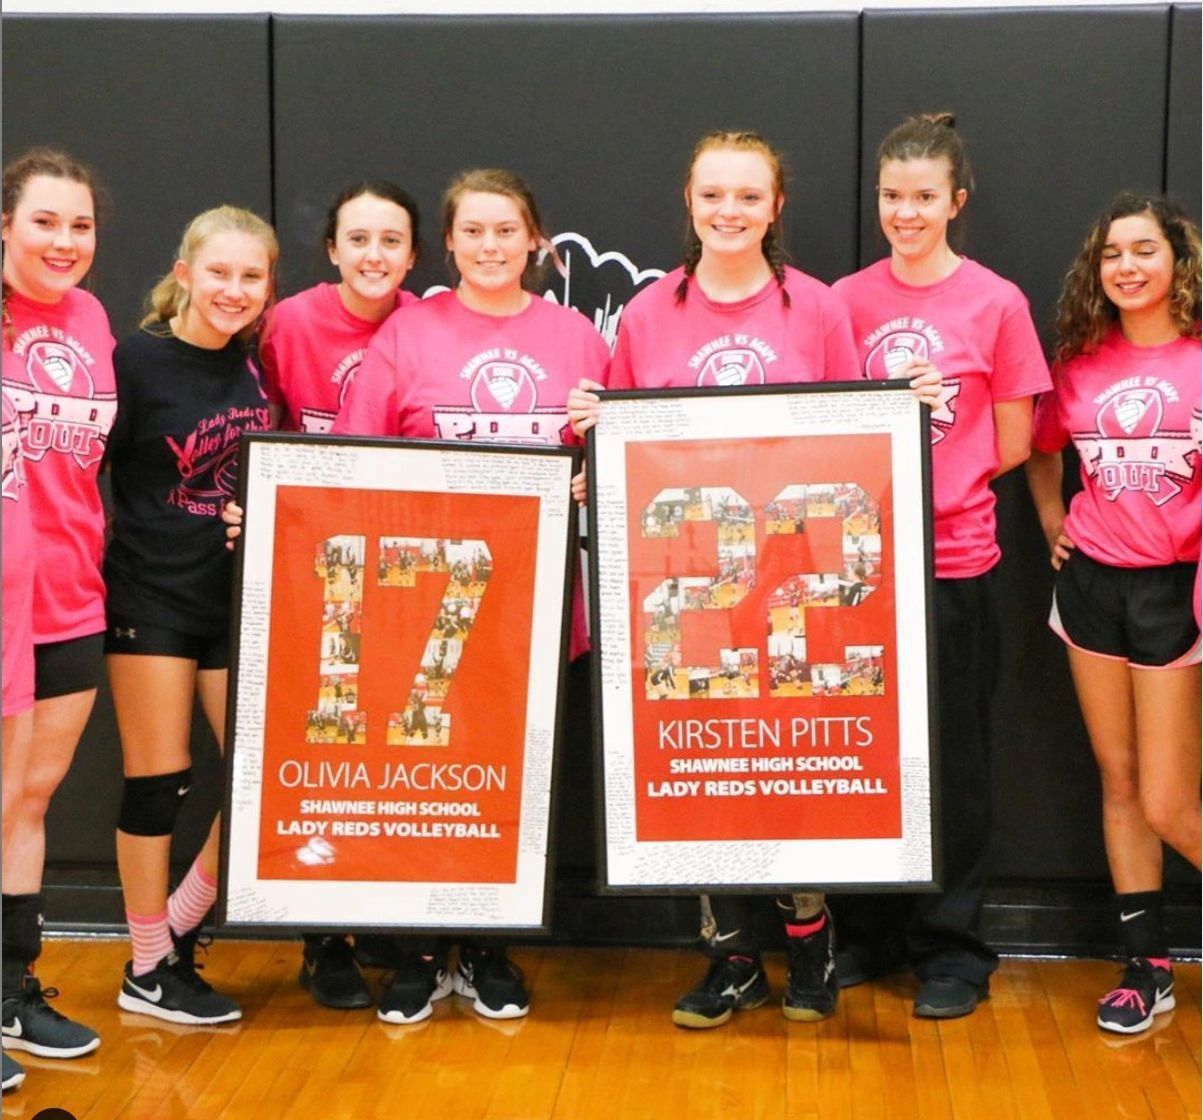 Senior Night Ideas And Gifts For Seniors In 2020 Senior Night Gifts Senior Night Volleyball Senior Night Gifts